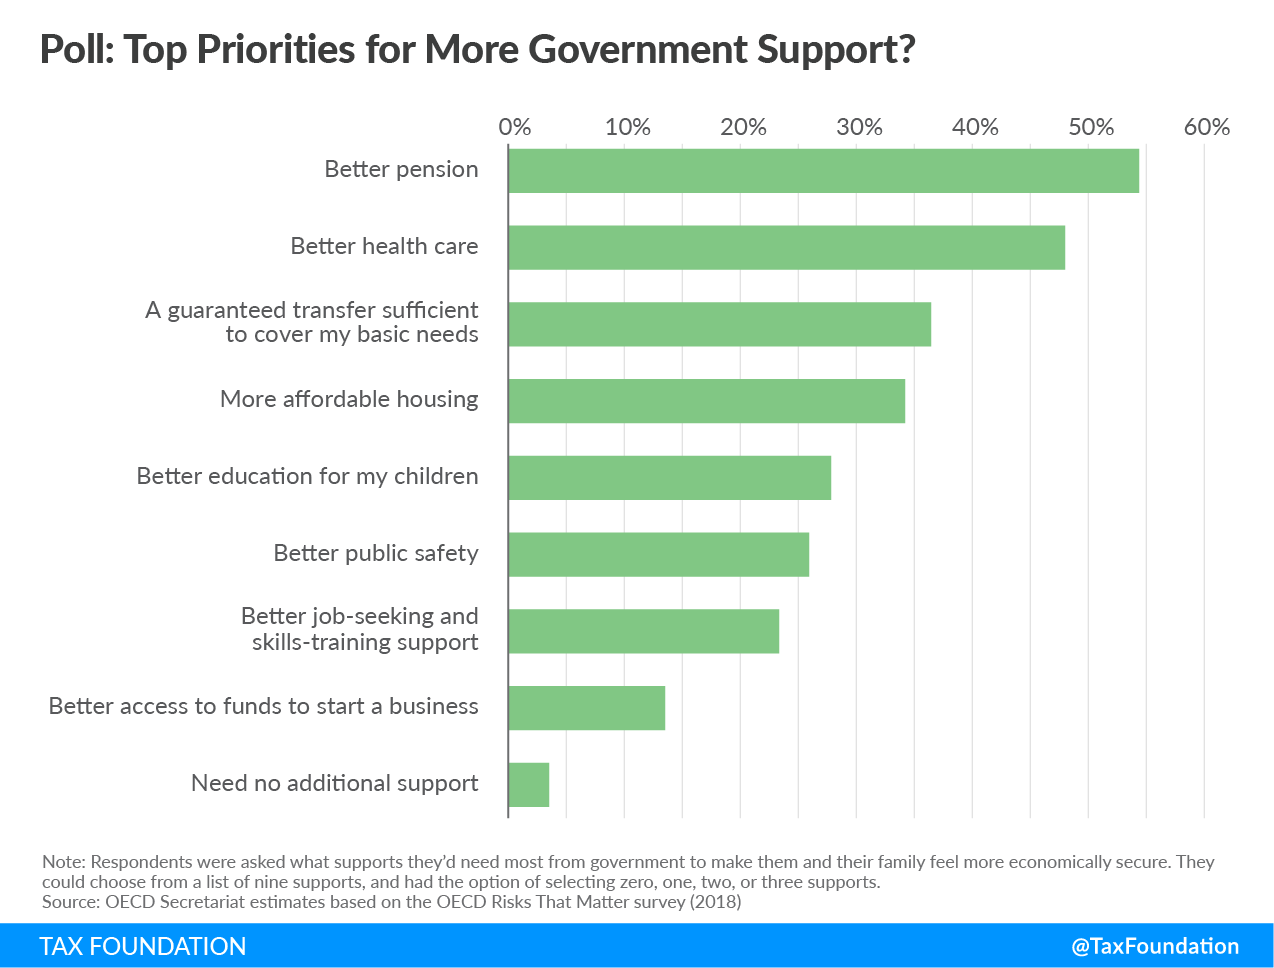 Top priorities for more government support are better pensions and healthcare